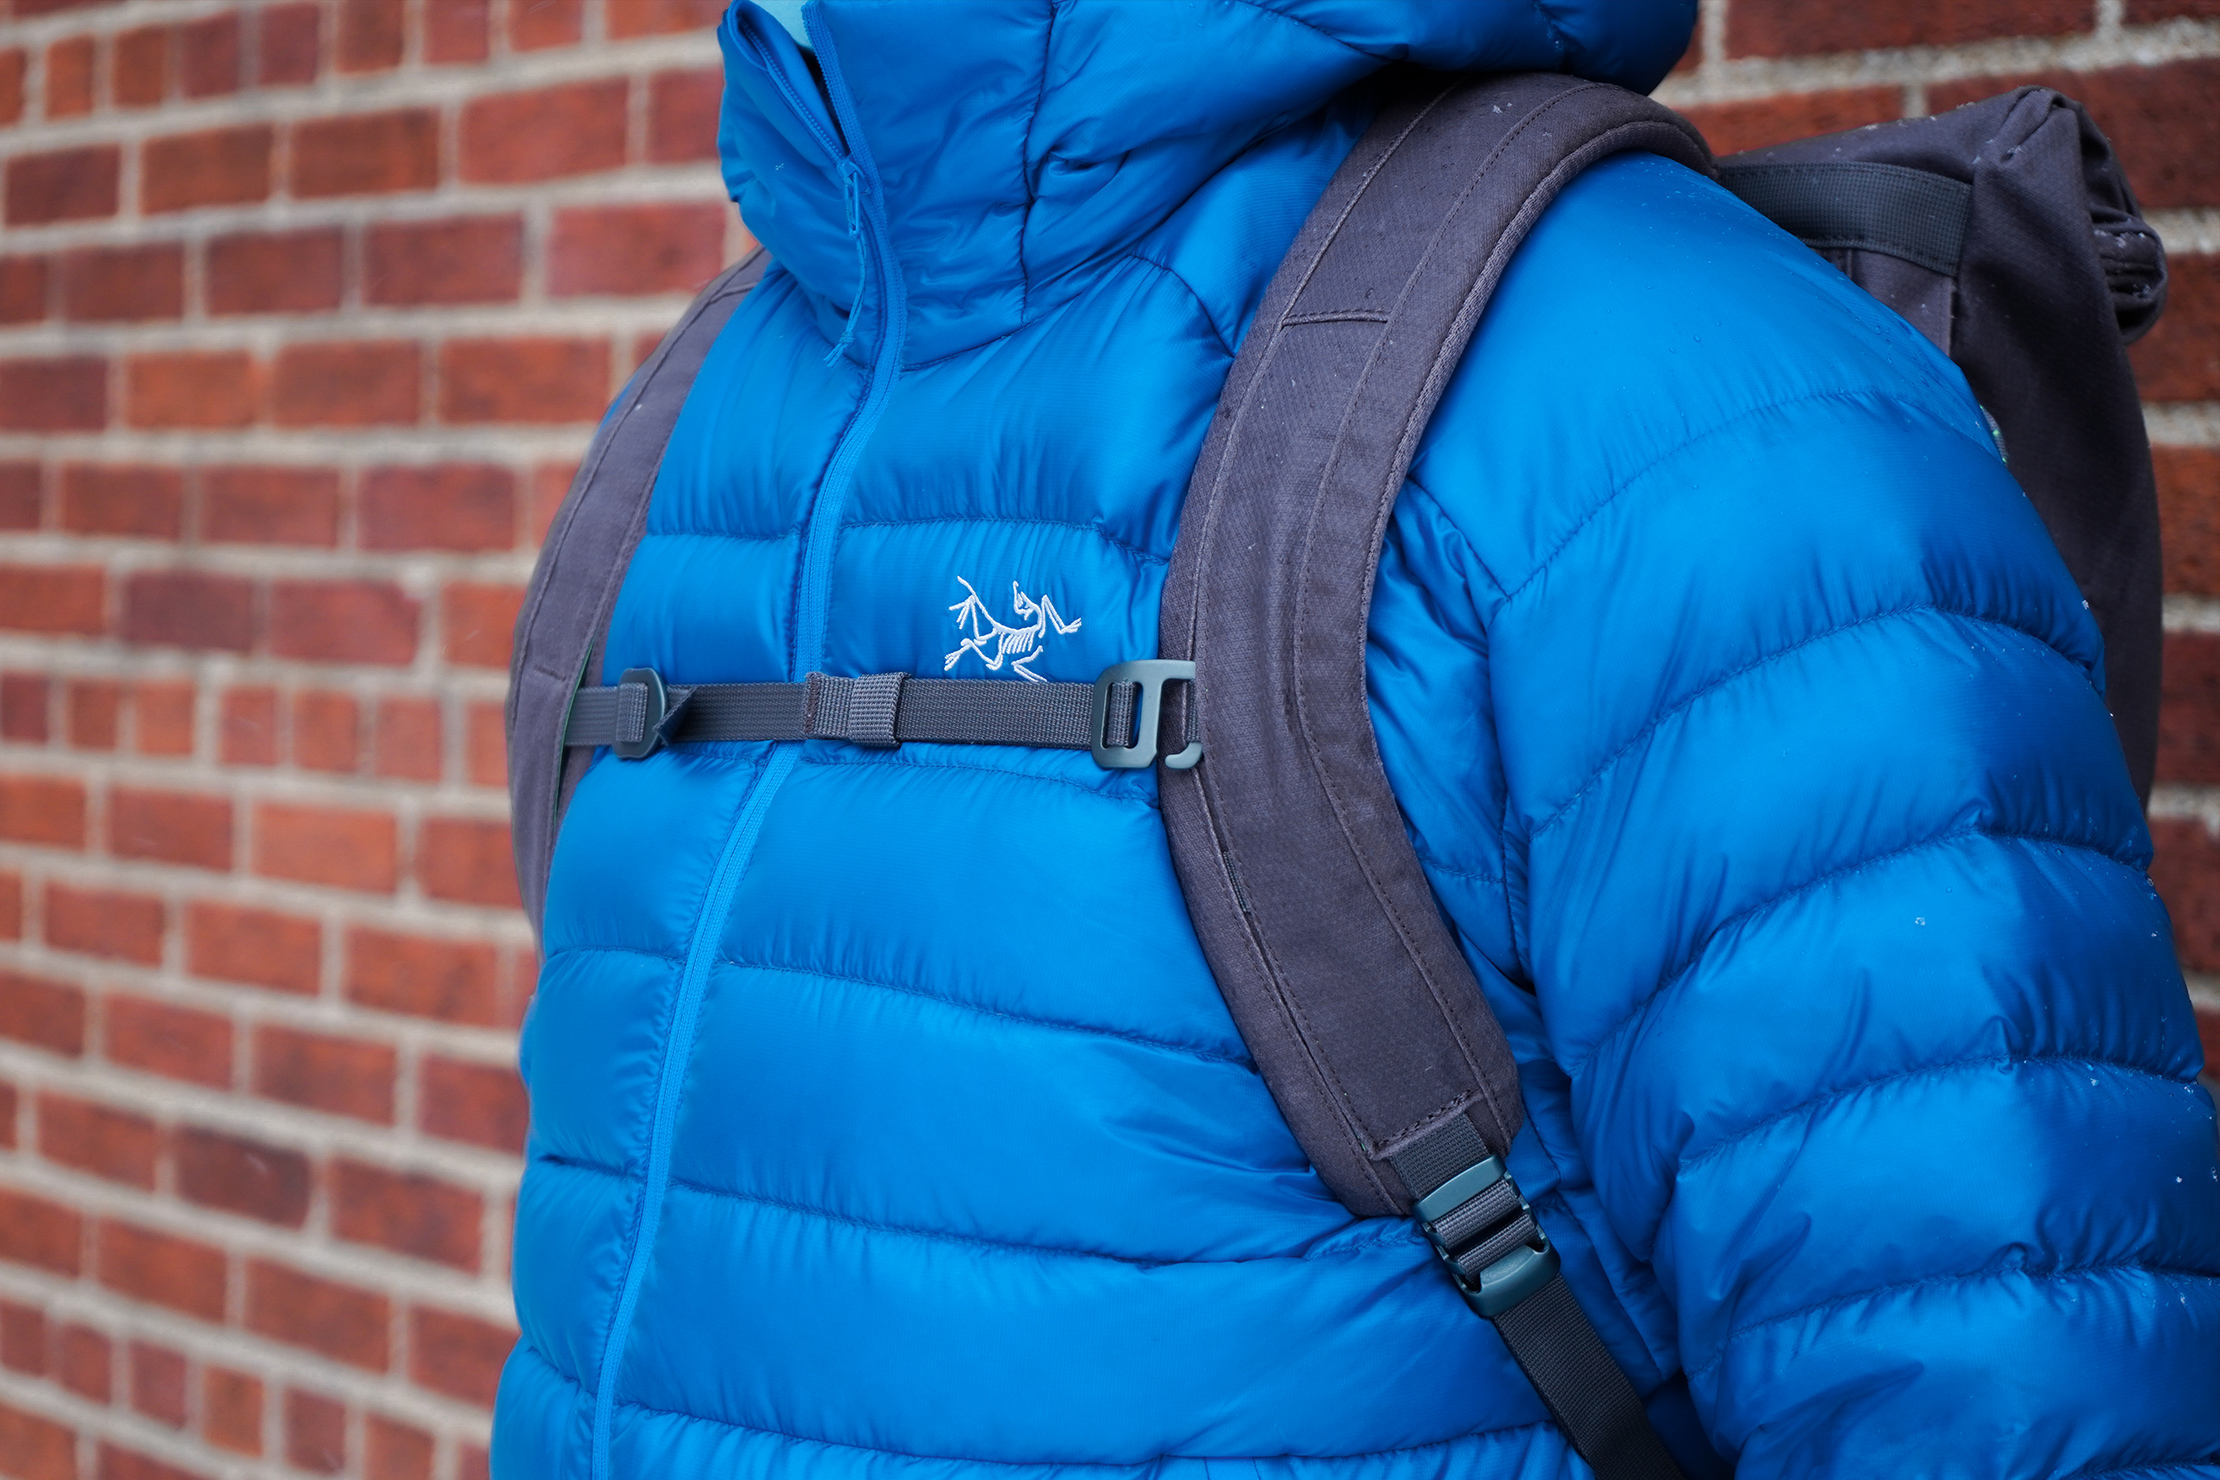 Millican Smith Roll Pack 18L   An adjustable sternum strap for added support